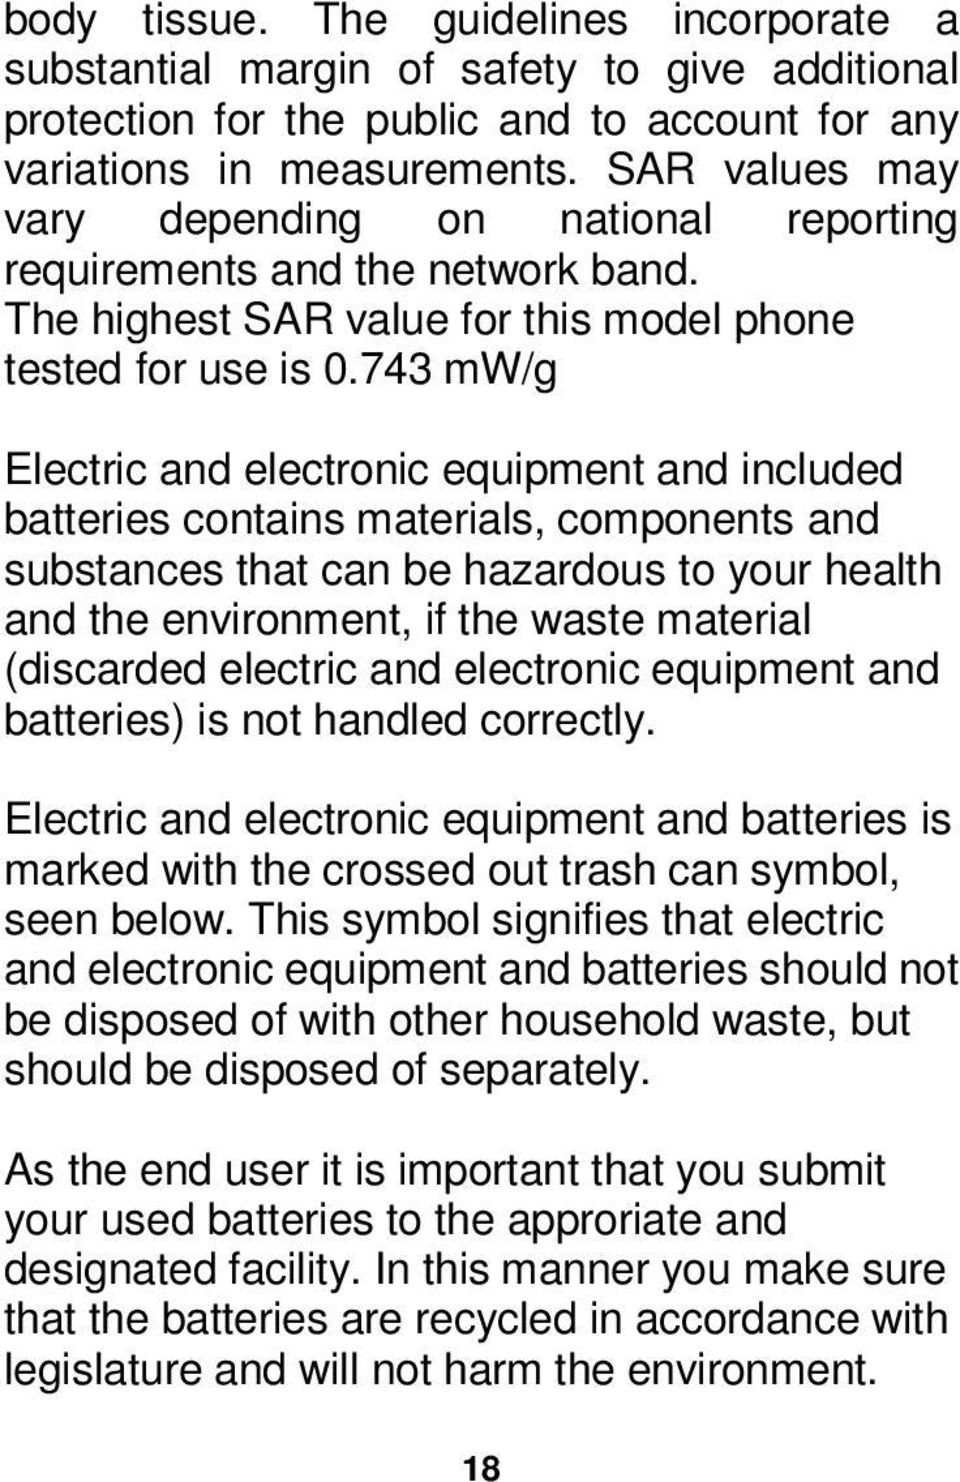 743 mw/g Electric and electronic equipment and included batteries contains materials, components and substances that can be hazardous to your health and the environment, if the waste material